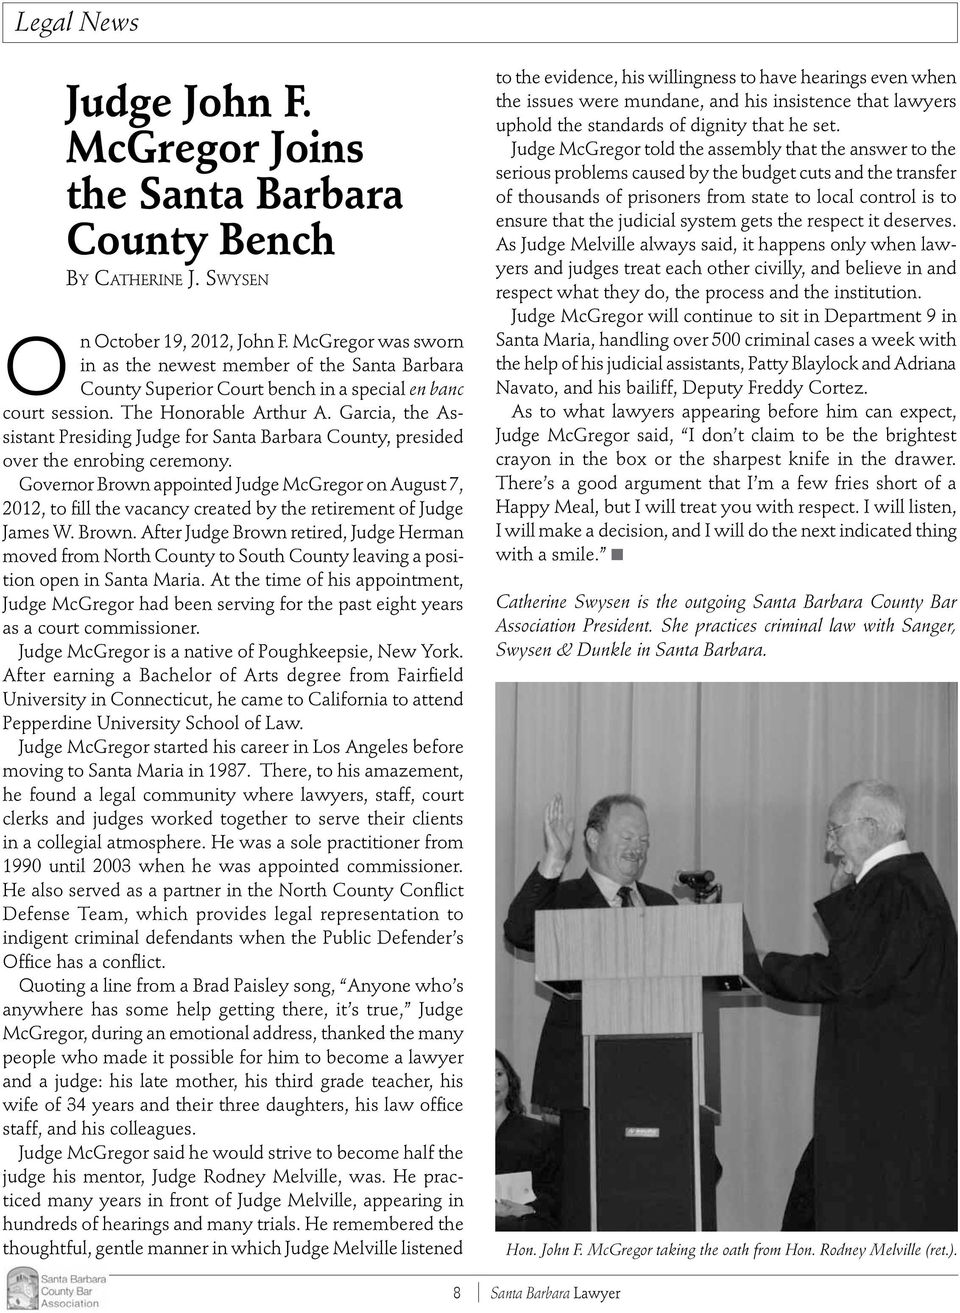 Garcia, the Assistant Presiding Judge for Santa Barbara County, presided over the enrobing ceremony.